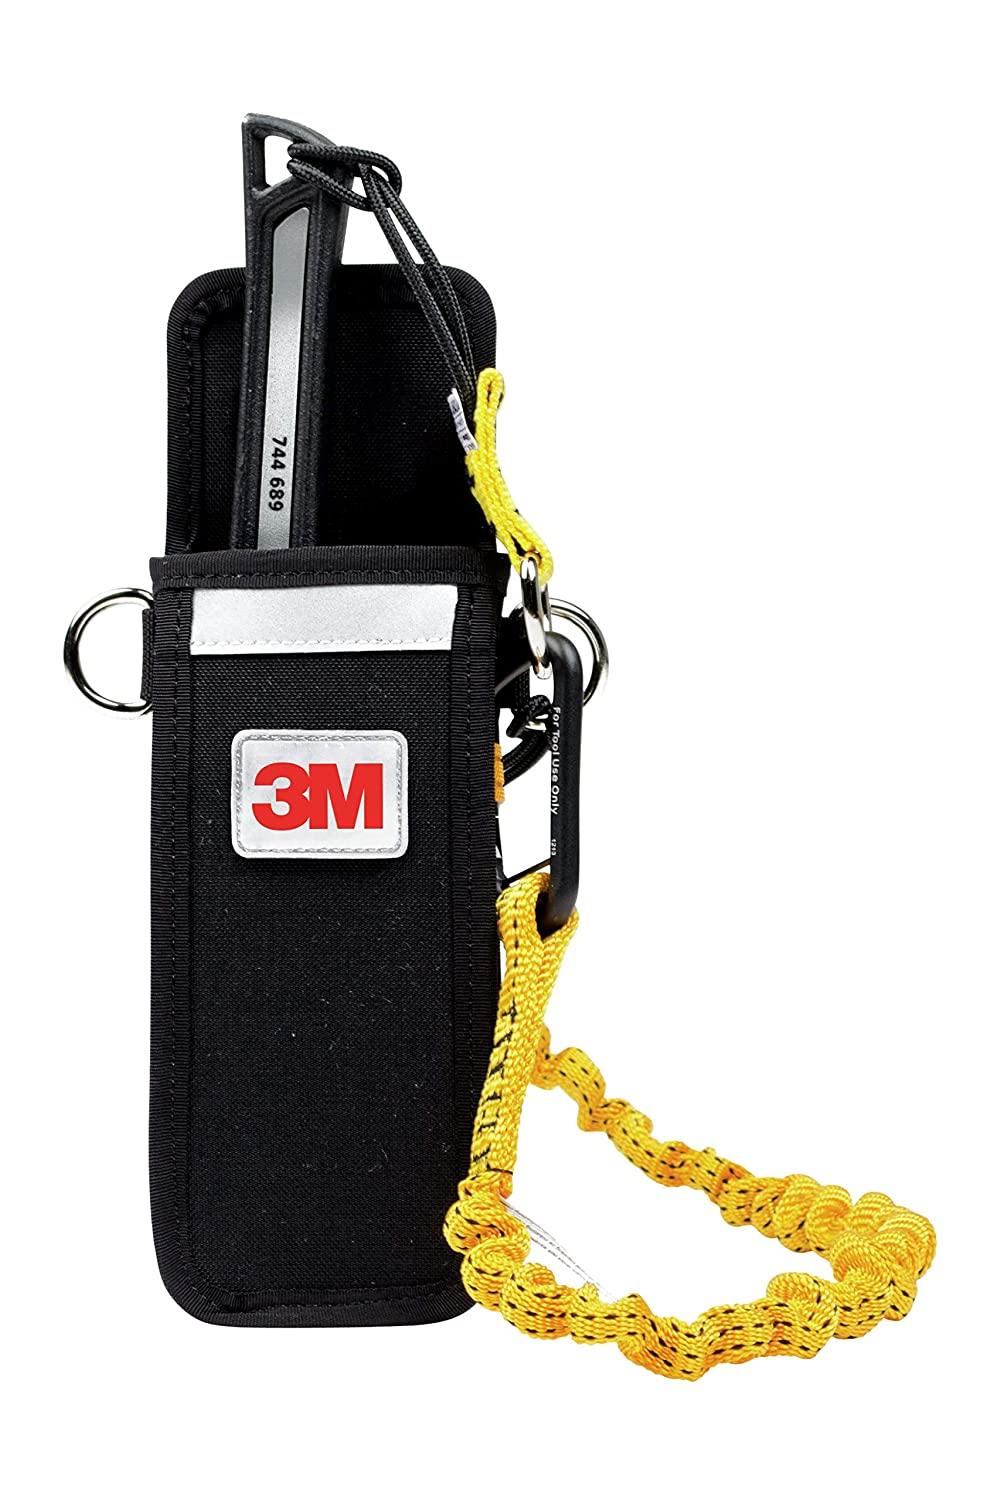 3M DBI-SALA Fall Protection For Tools, 1500105,Extra Deep Single Tool Holster For Larger Tools Attaches To Belt andLoaded w/Innovative Features